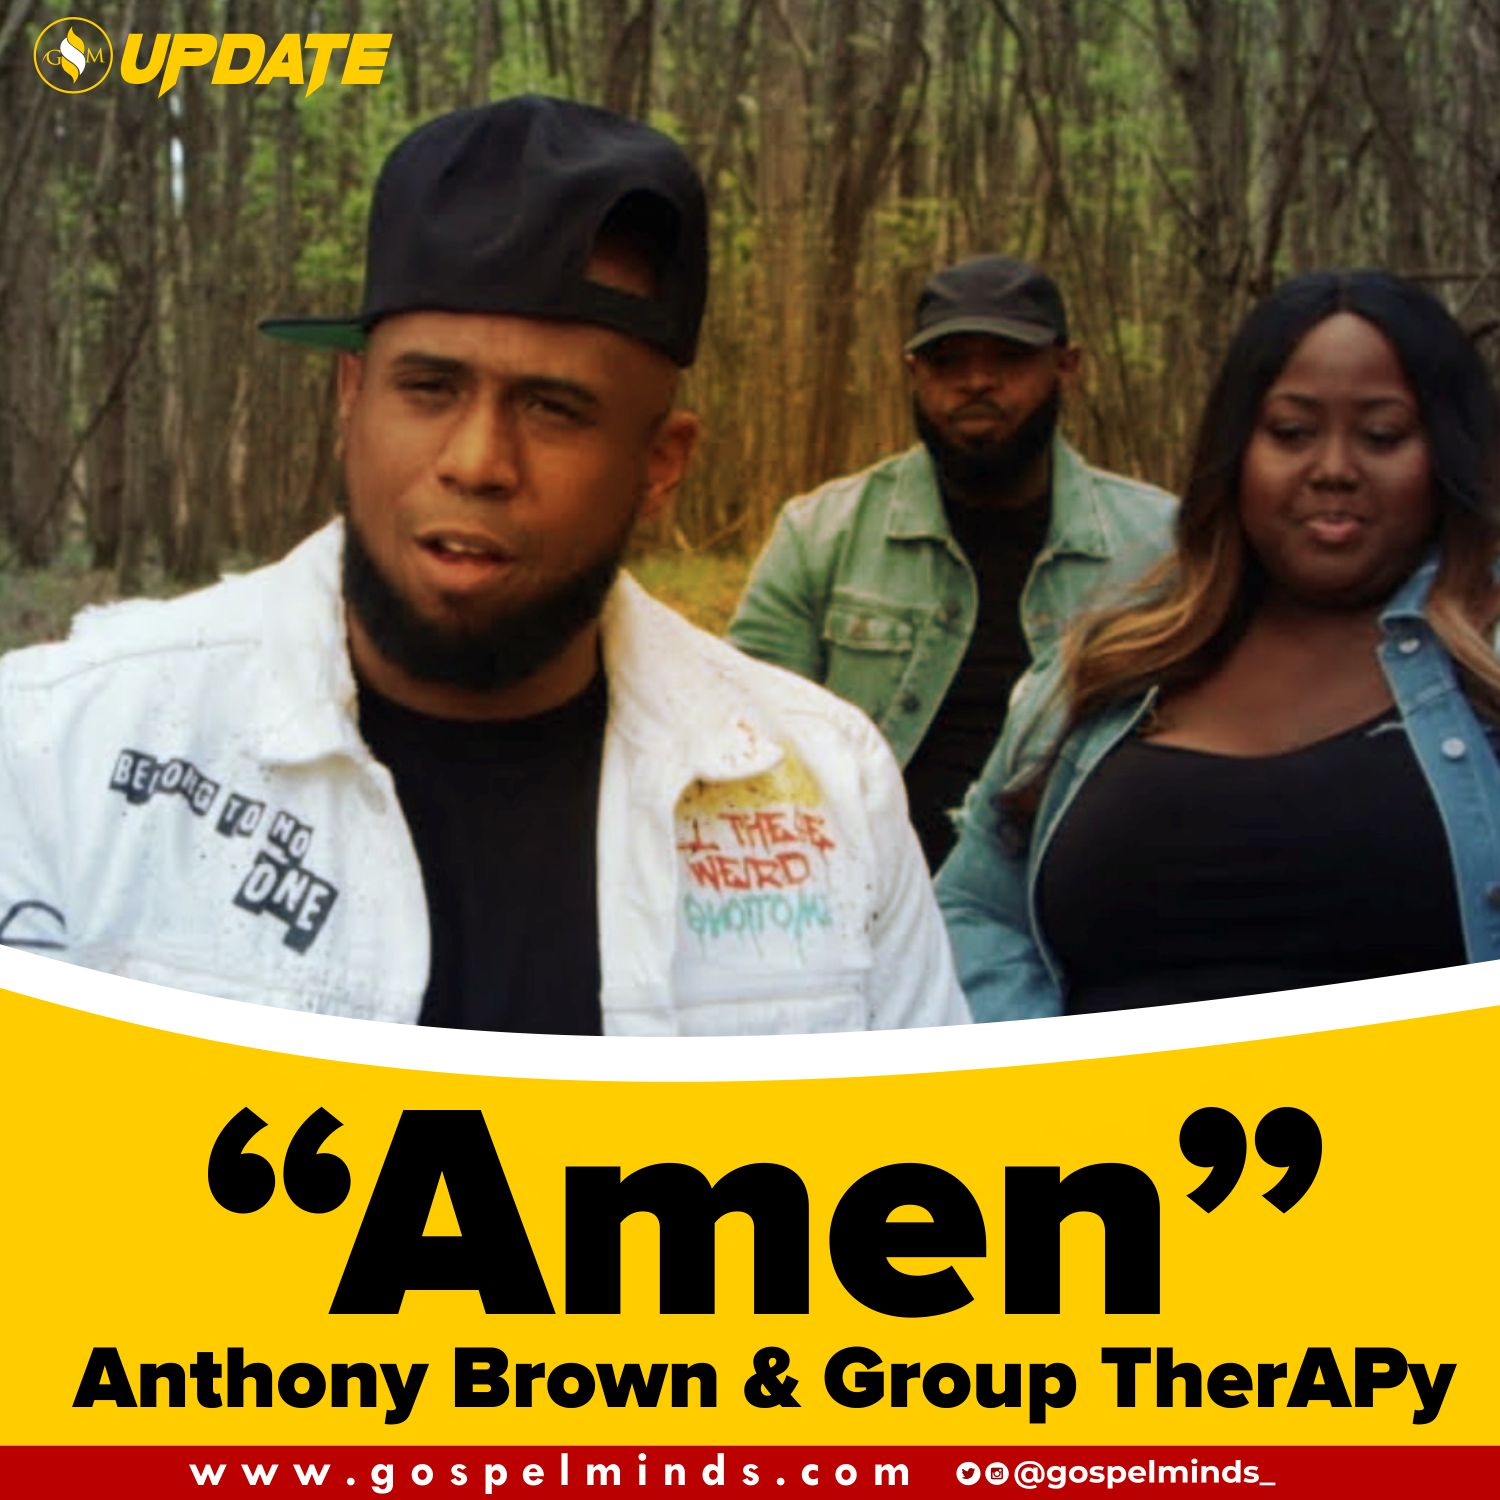 Amen Anthony Brown & Group TherAPy